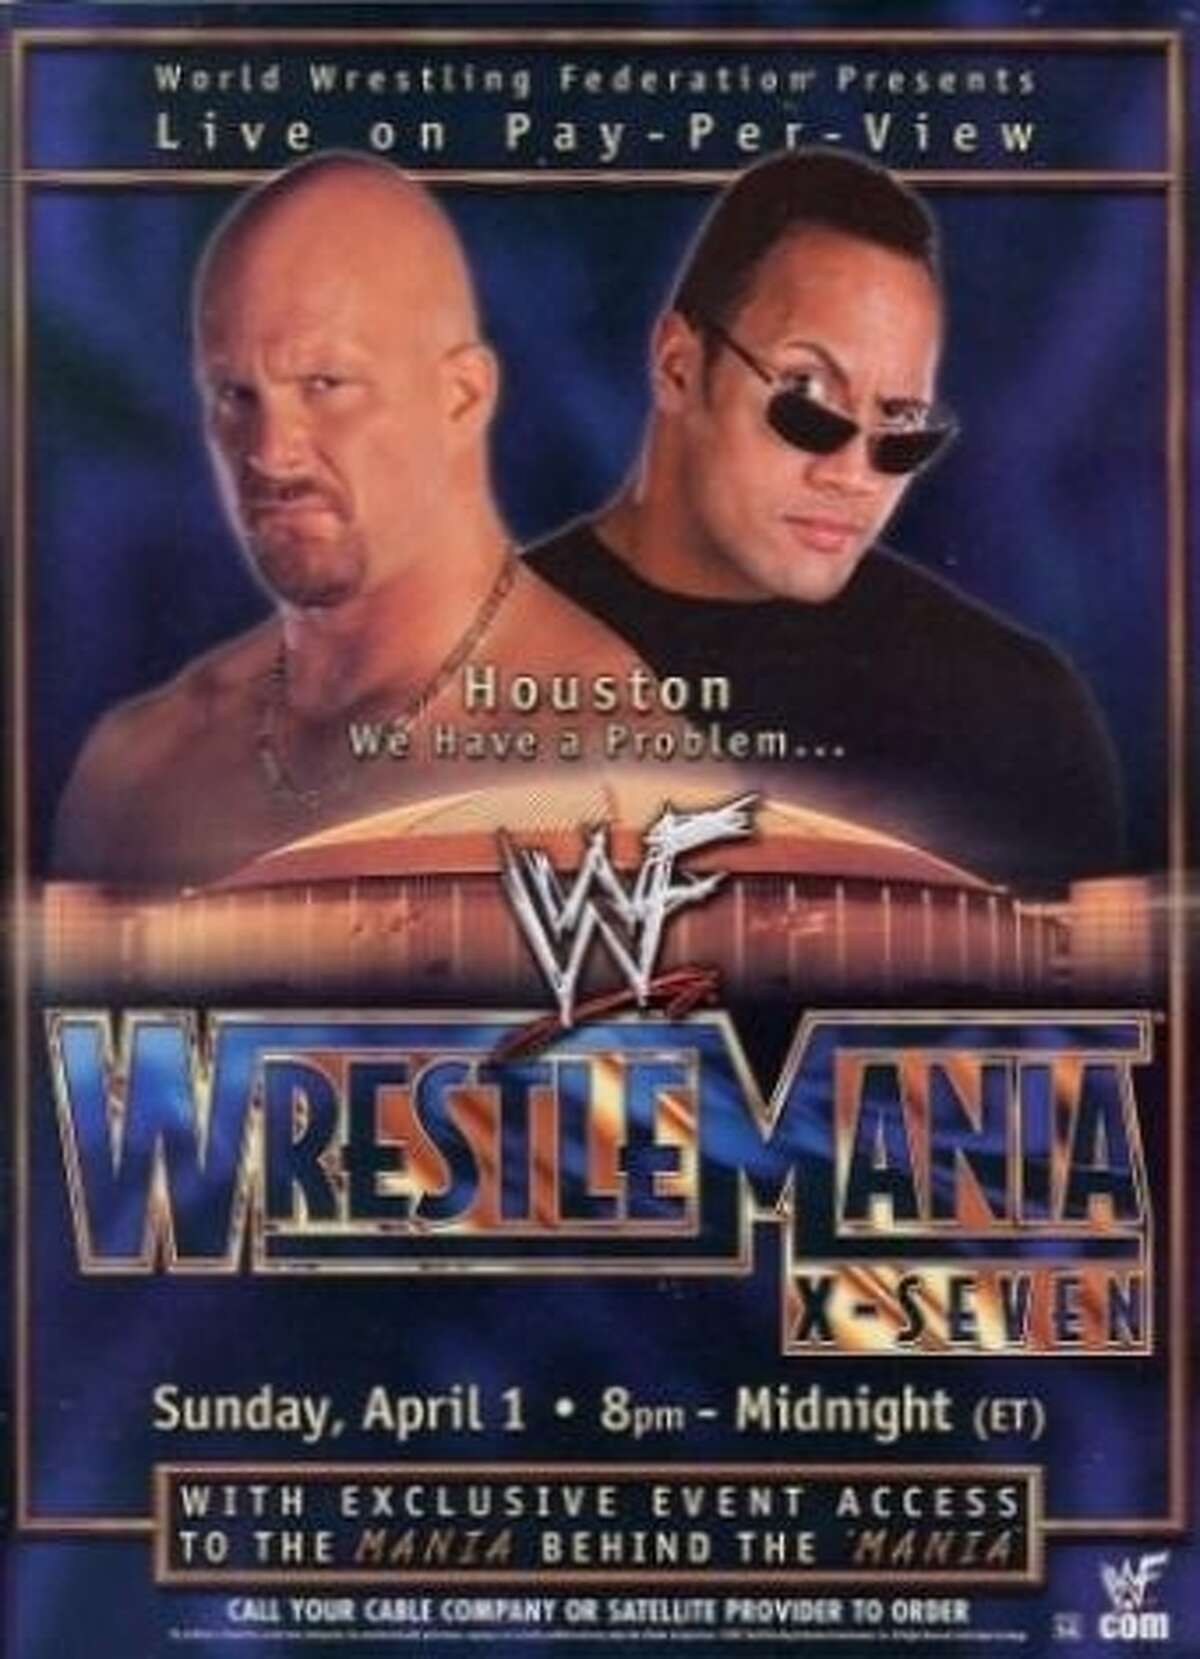 The event was the highest-grossing live event in WWE history up to that point, with gross receipts of $3.5 million. The company sold more than 100,000 tickets to WrestleMania and a three-day fan festival held at the nearby AstroHall.